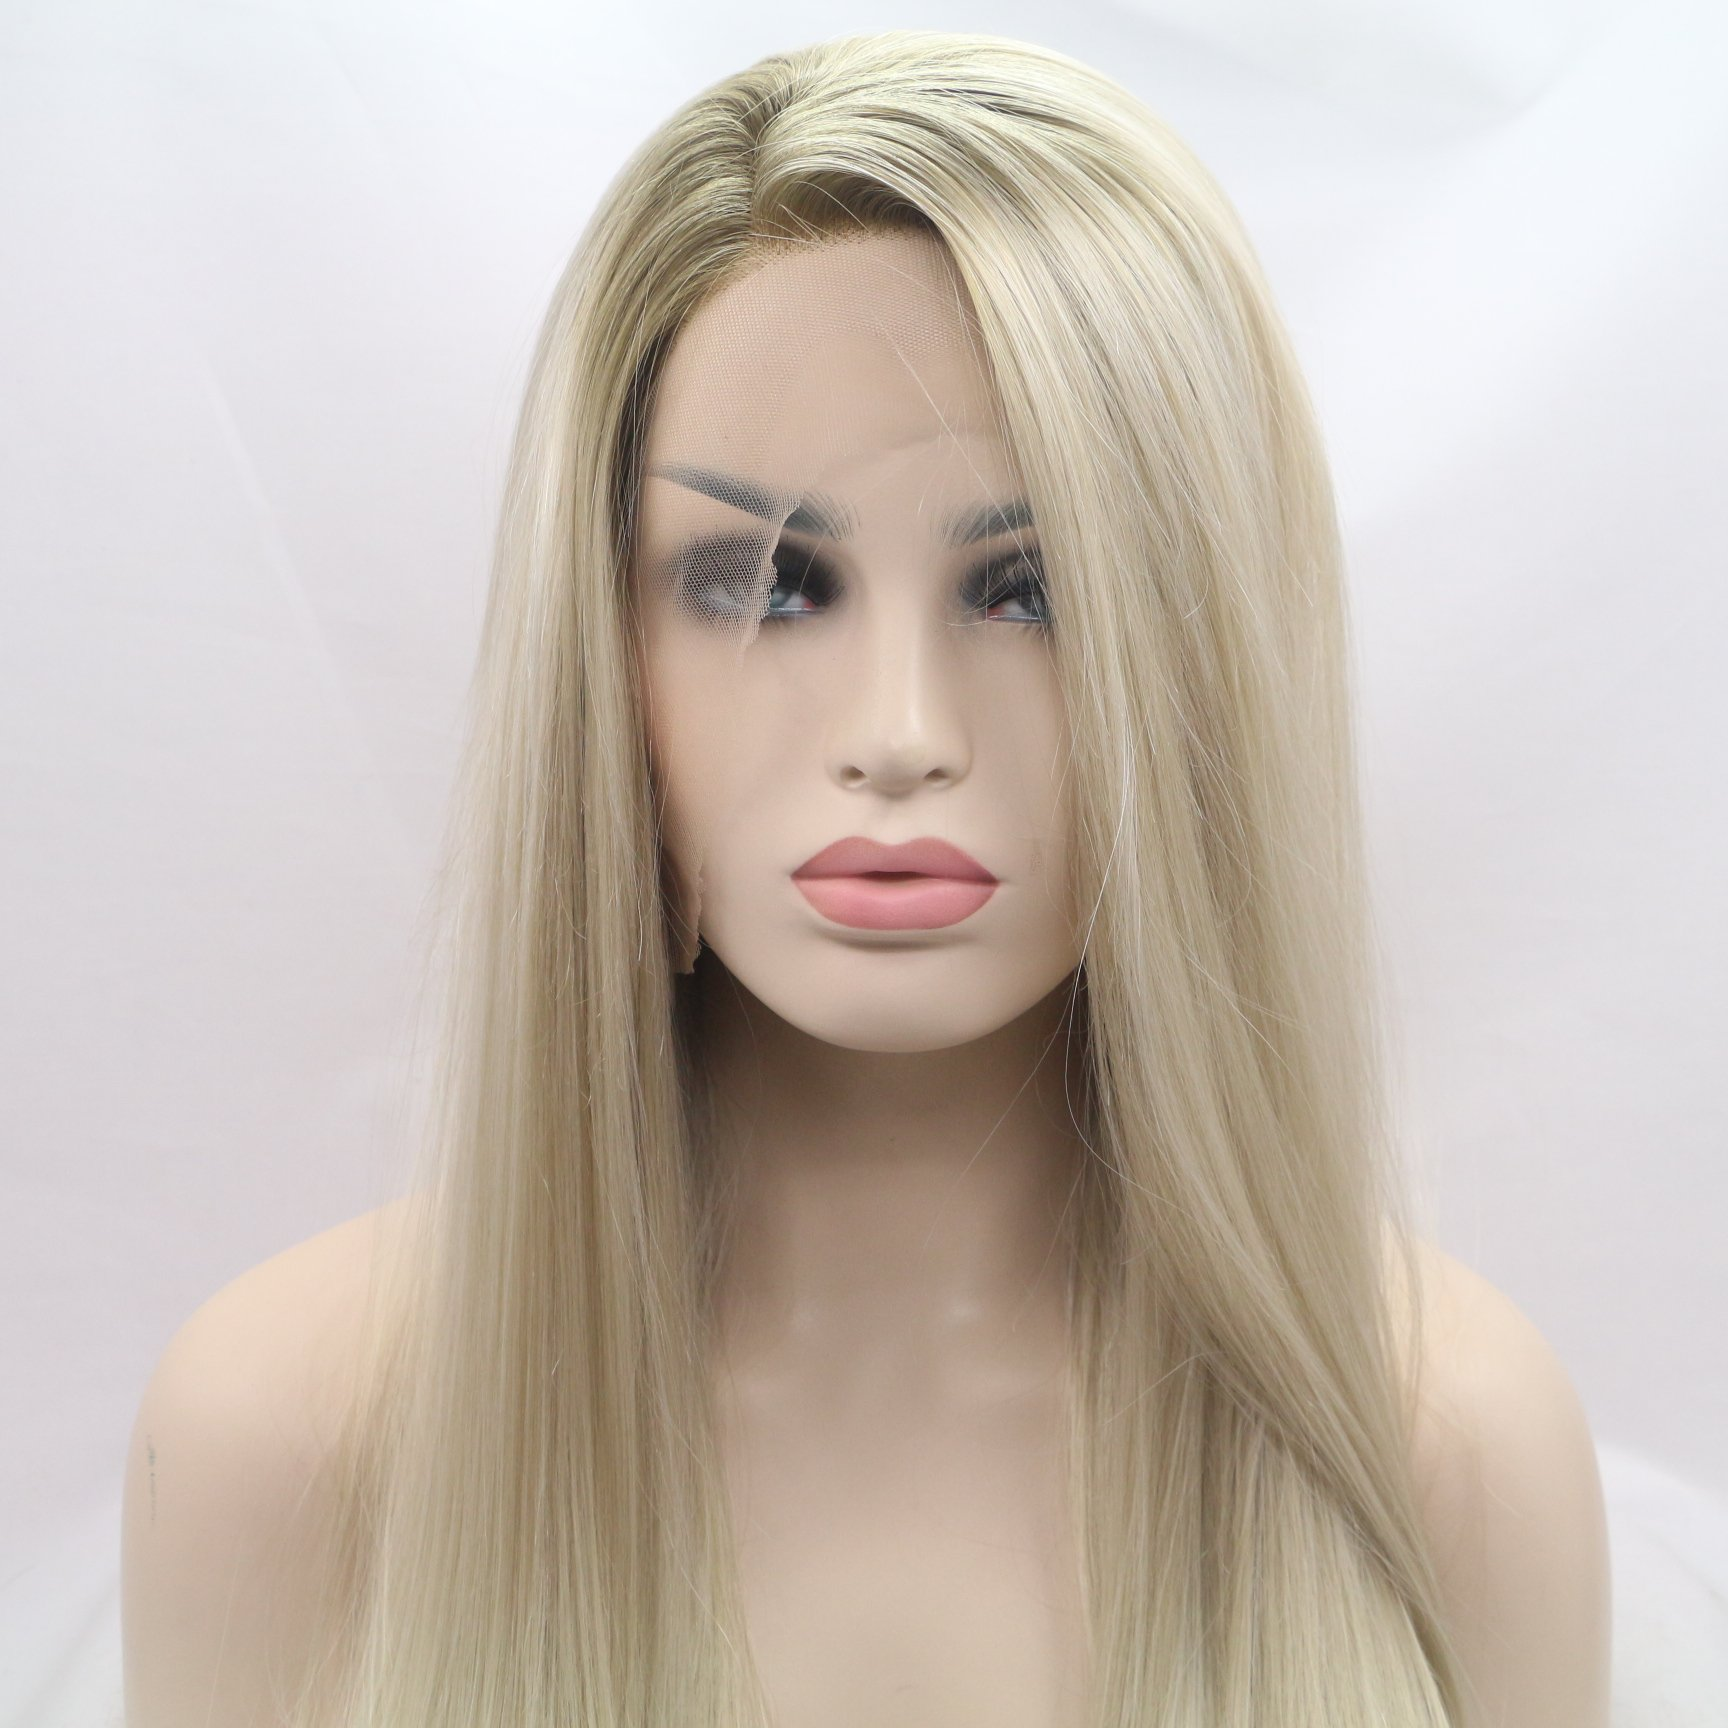 Xiweiya Ombre long blonde silky straight synthetic lace front wigs with Dark Root for women, Drag Queen with Heat Resistant Fiber Hair Replacement Wig Side Part 24 inch